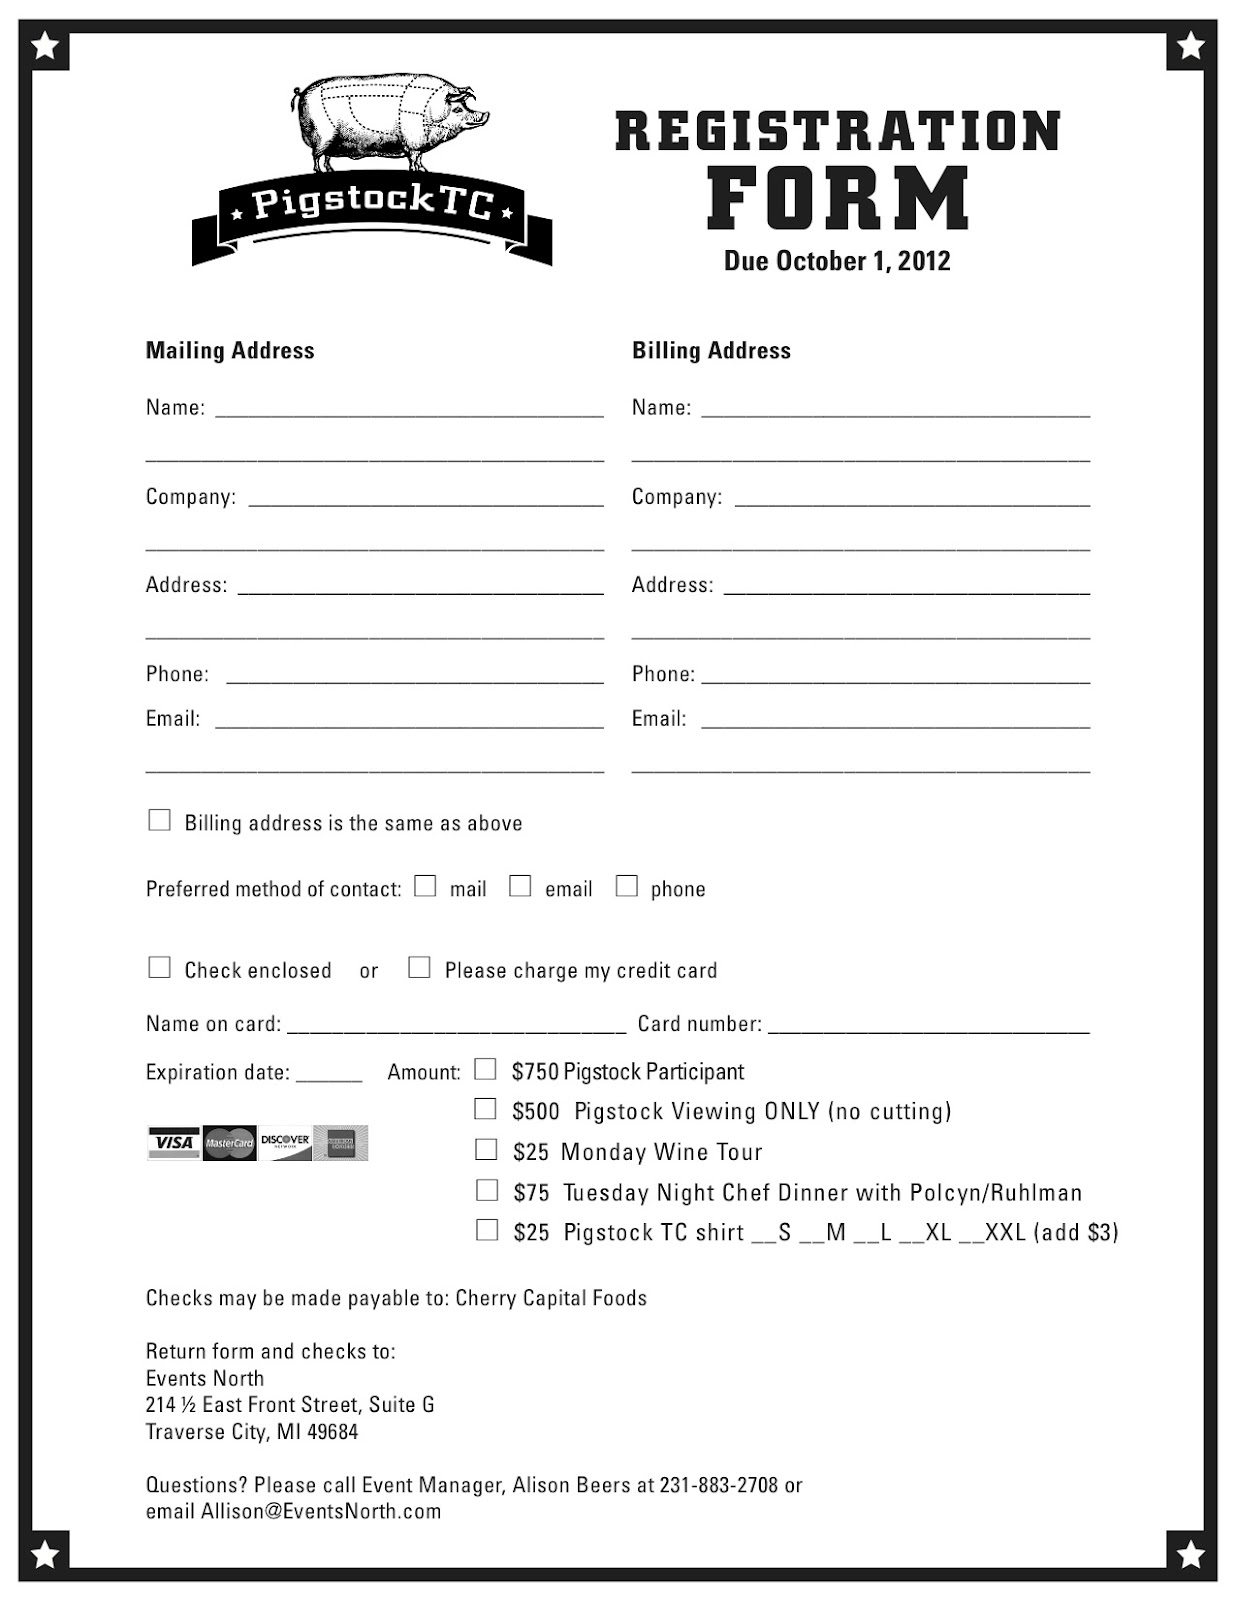 Registration Form Template blank to do list free download – Application Form Template Free Download